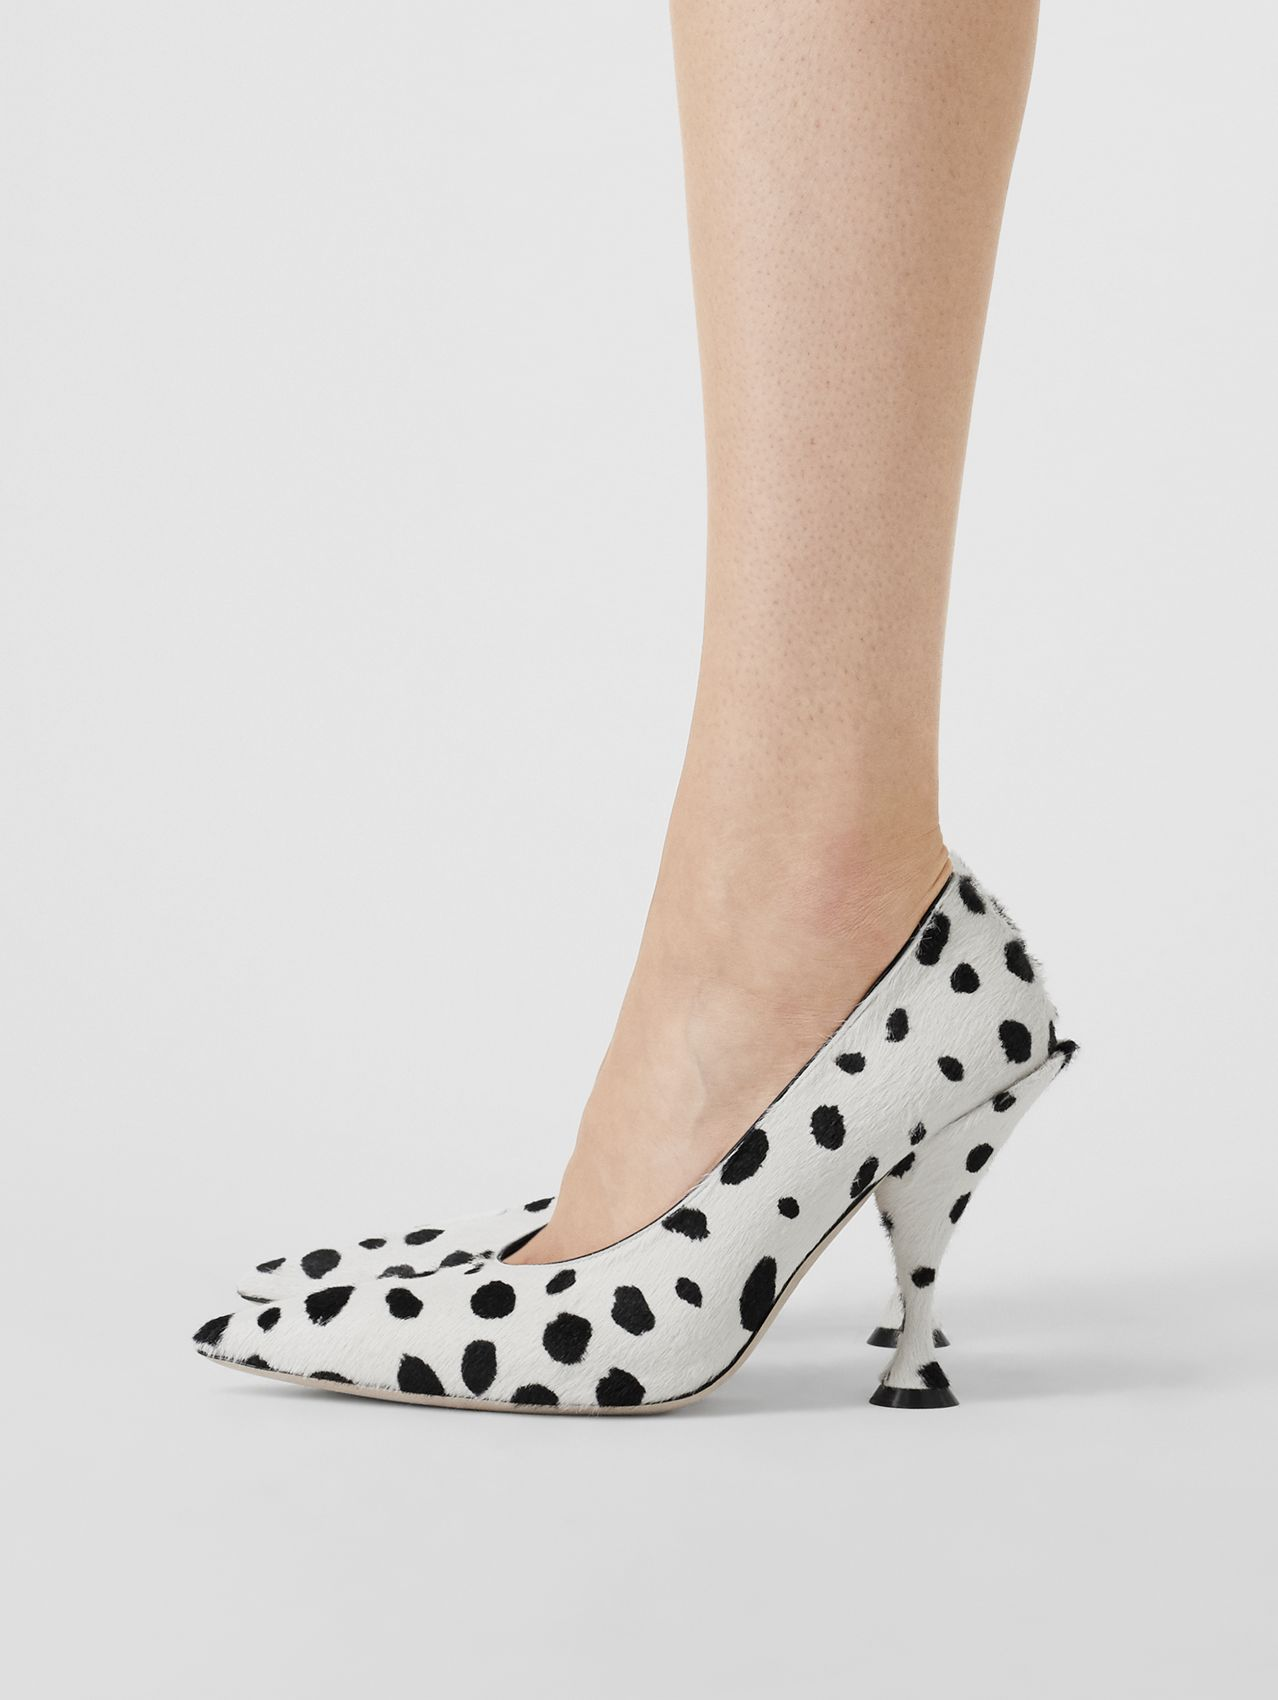 Dalmatian Print Calf Hair Pumps (Optic White/black)